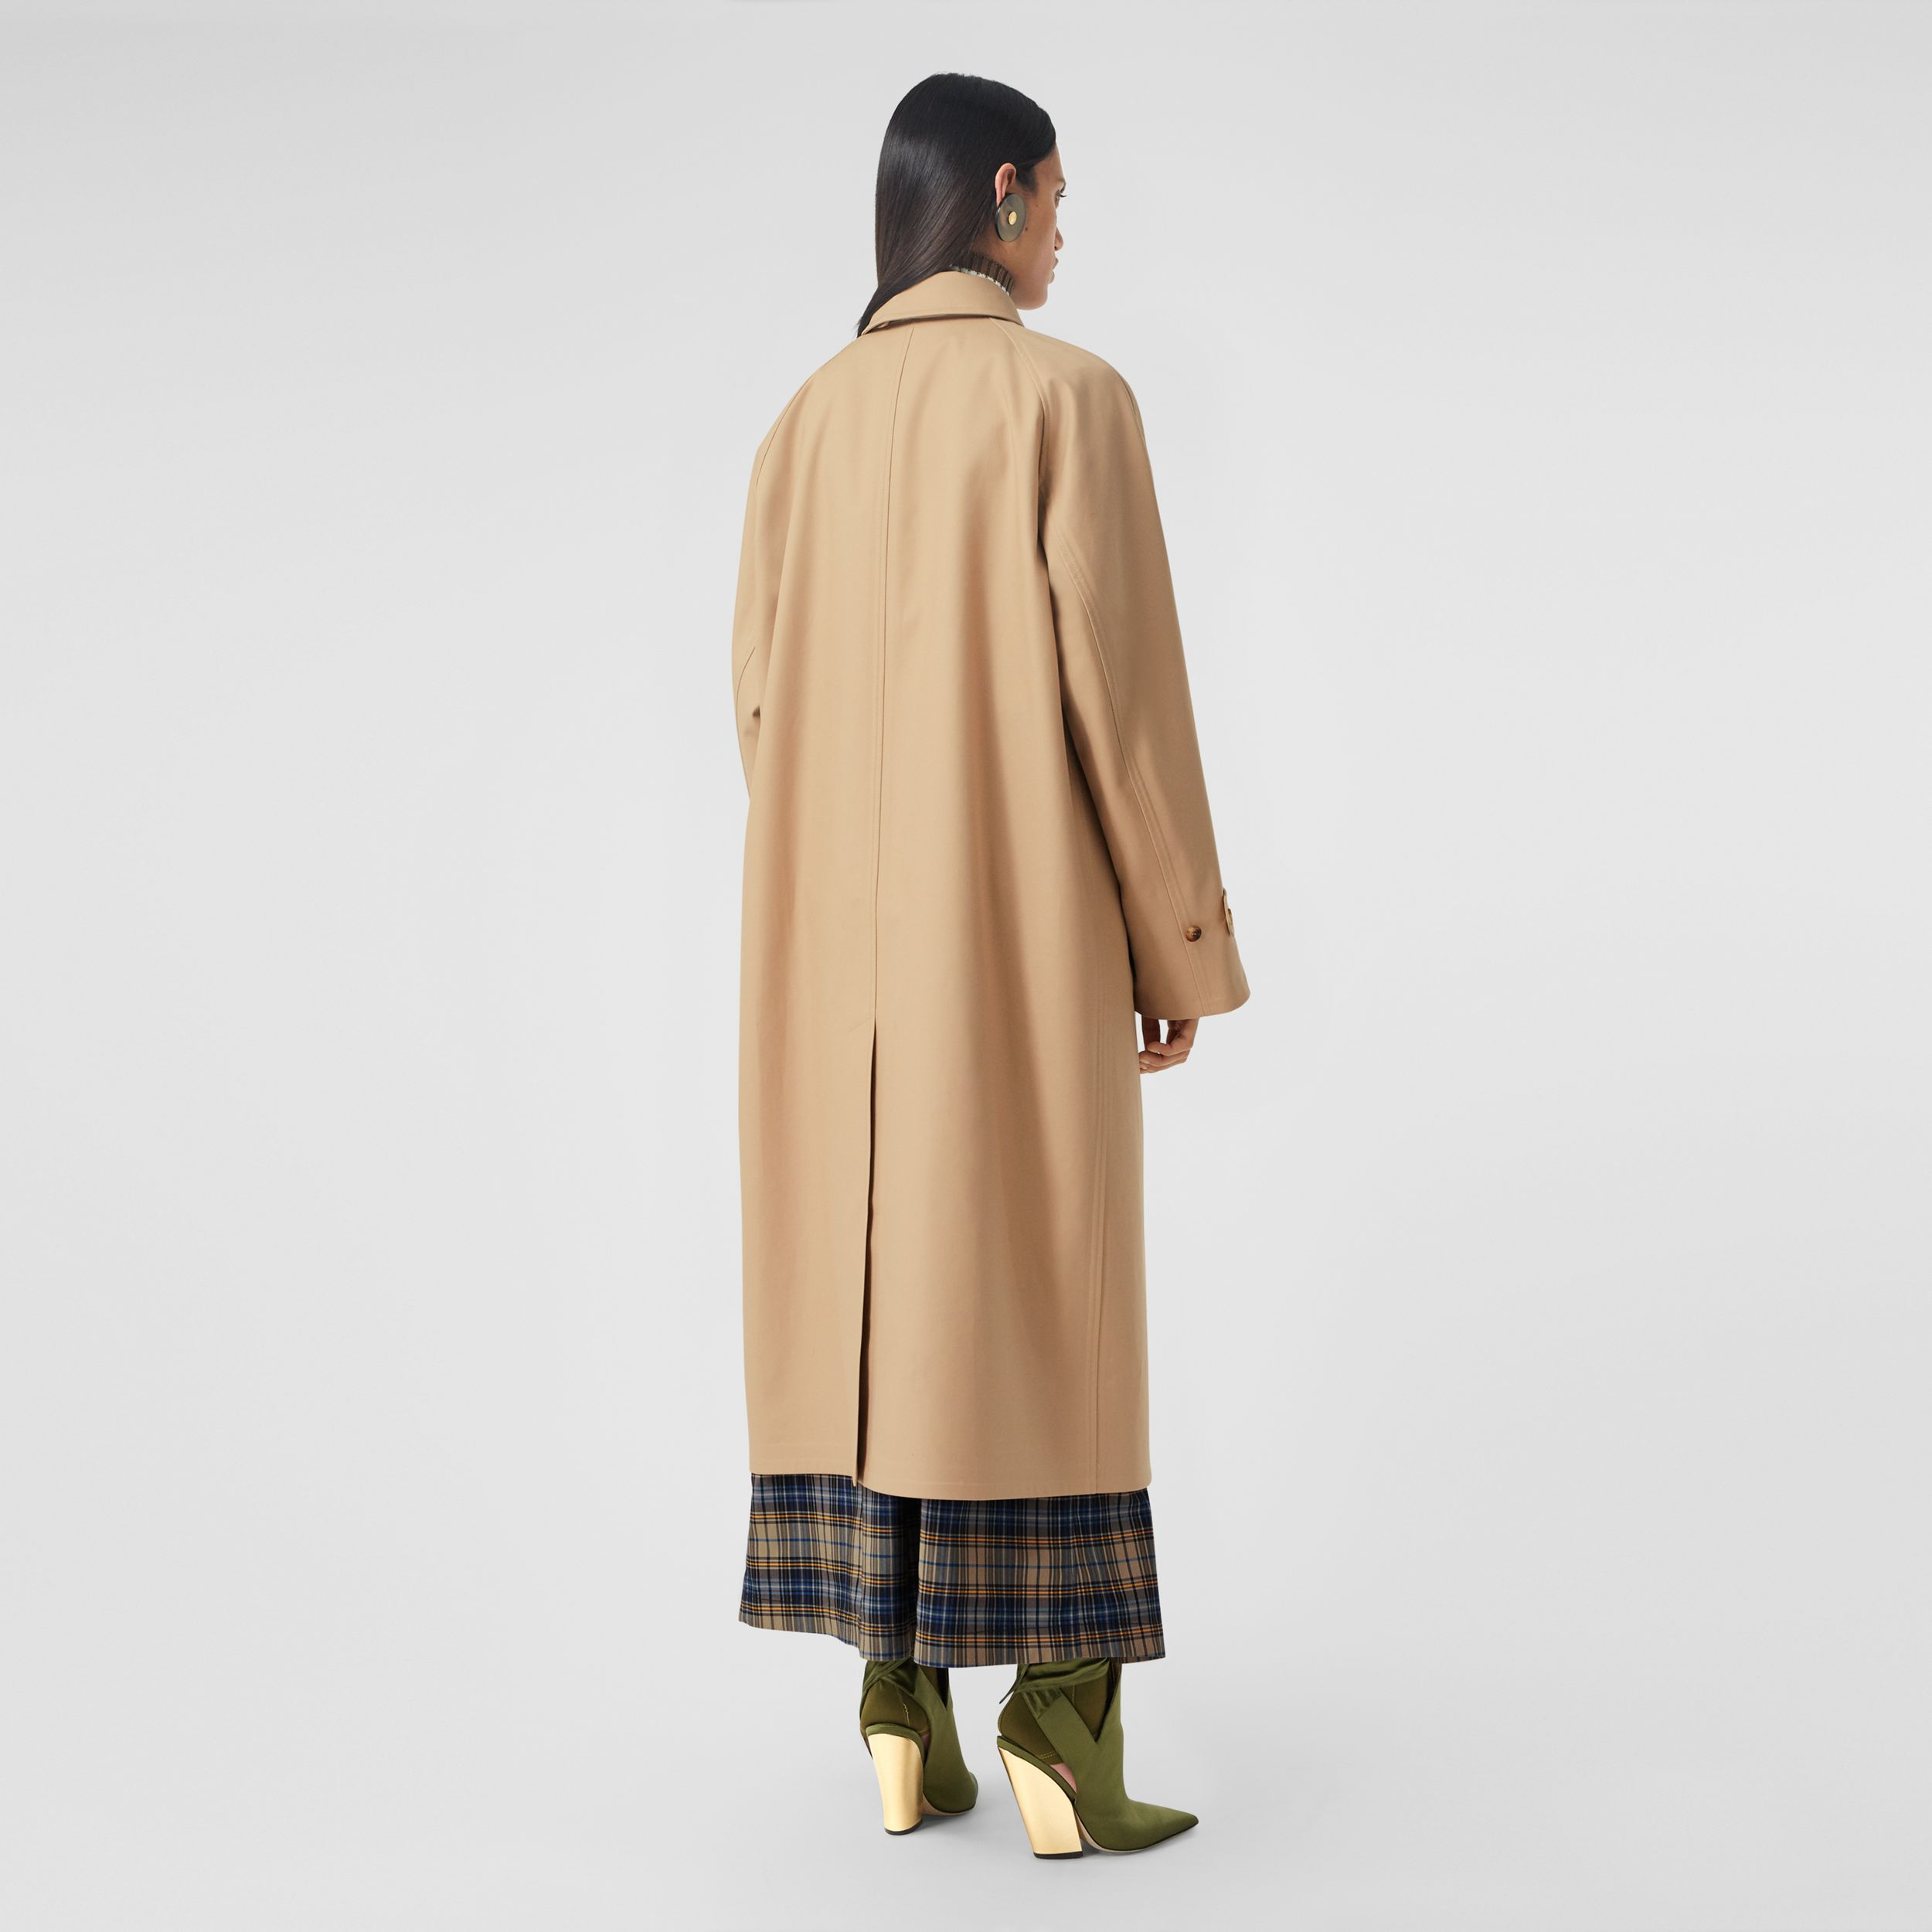 Cotton Gabardine Reconstructed Car Coat in Soft Fawn - Women | Burberry United Kingdom - 3